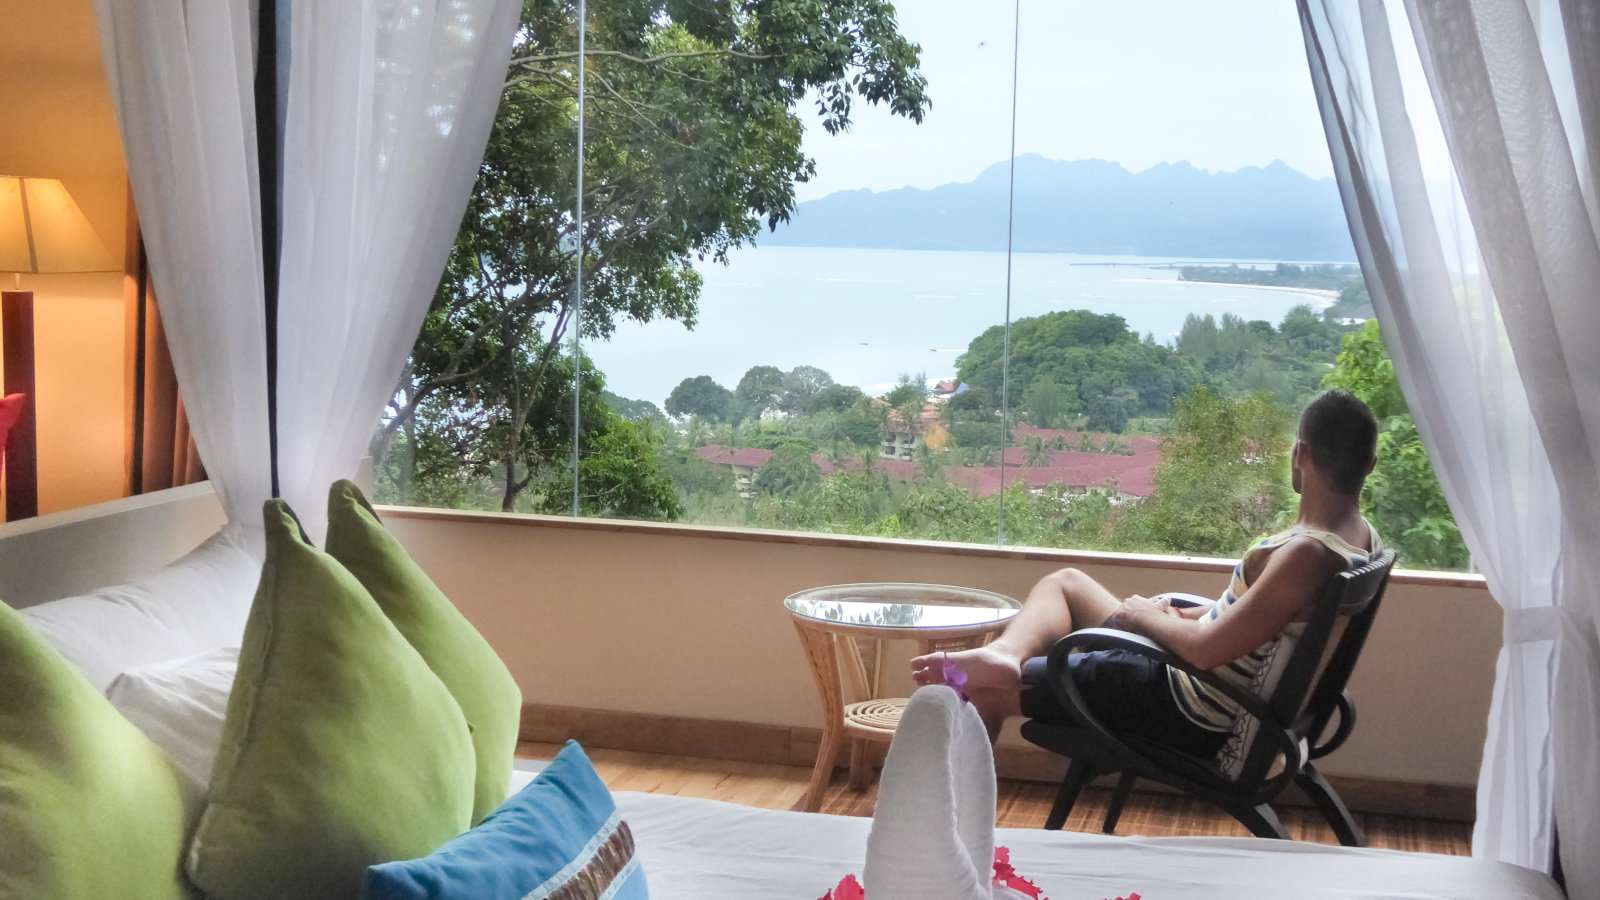 Ambong Ambong is a luxury jungle retreat in Langkawi which we found to be the most gay friendly on the whole island